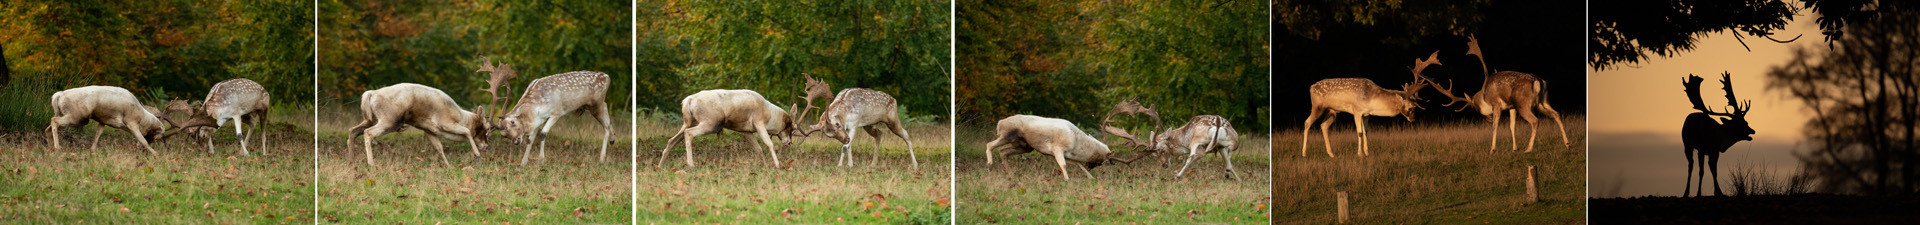 15 THE RUTTING SEASON by Ray Crowle